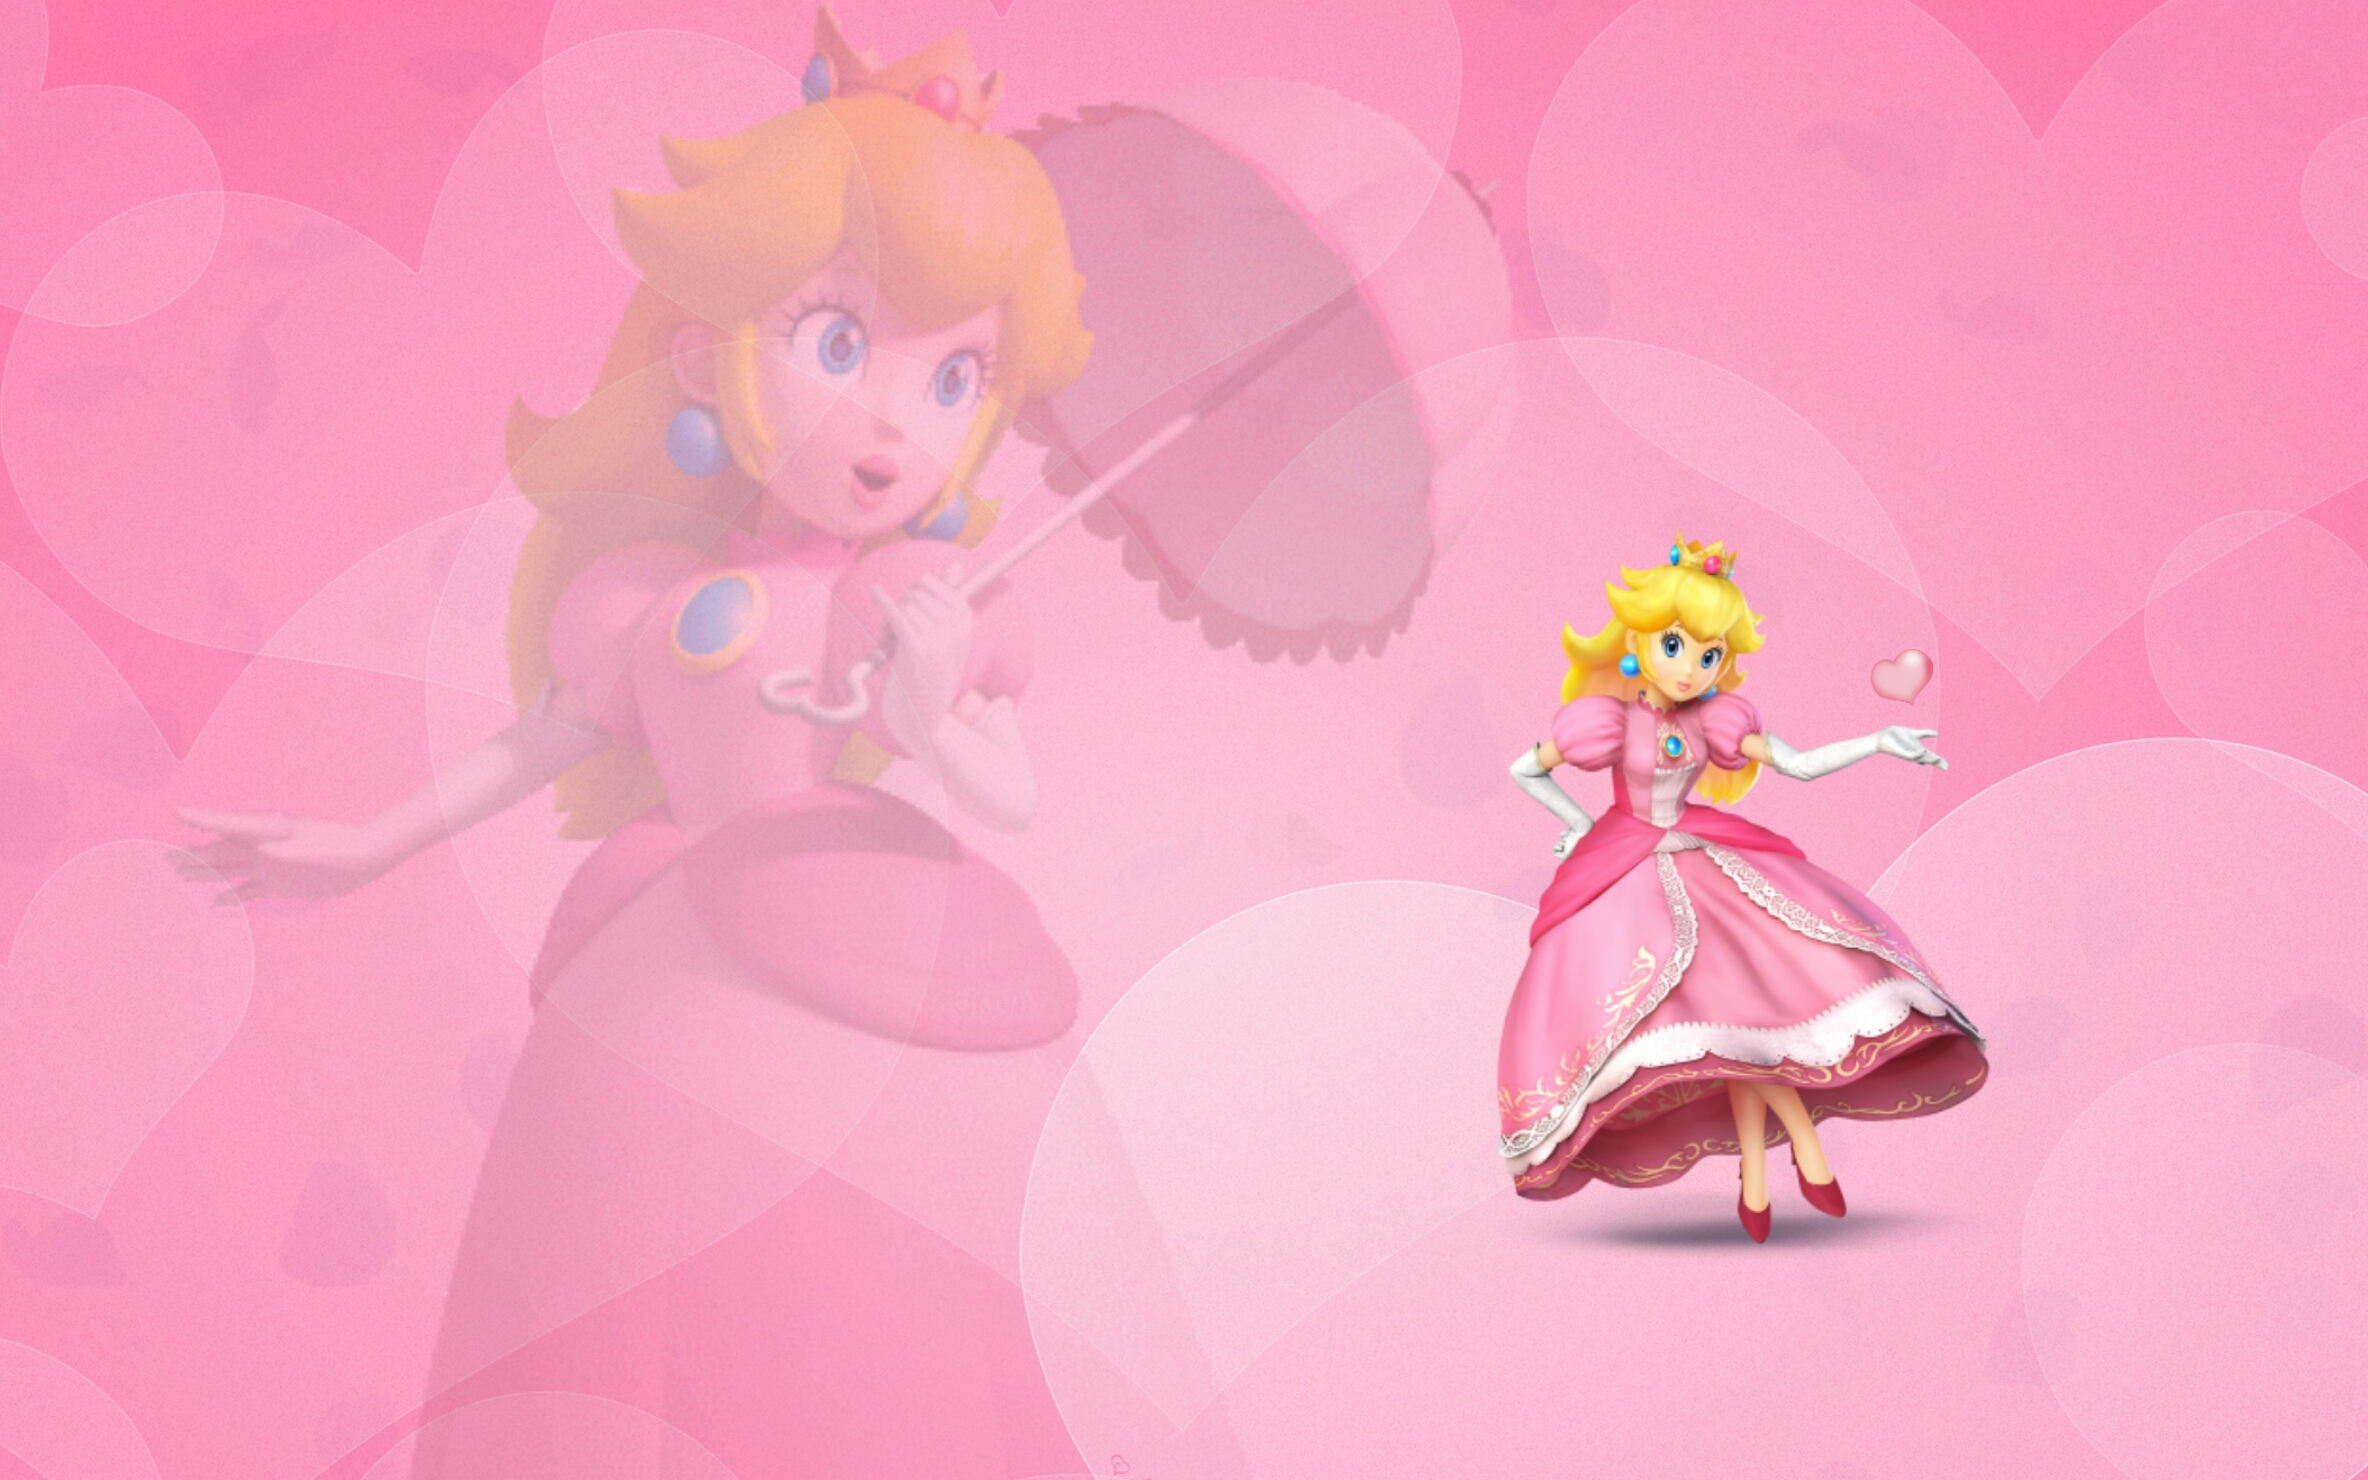 Princess Peach Queen Zelda Deviantart